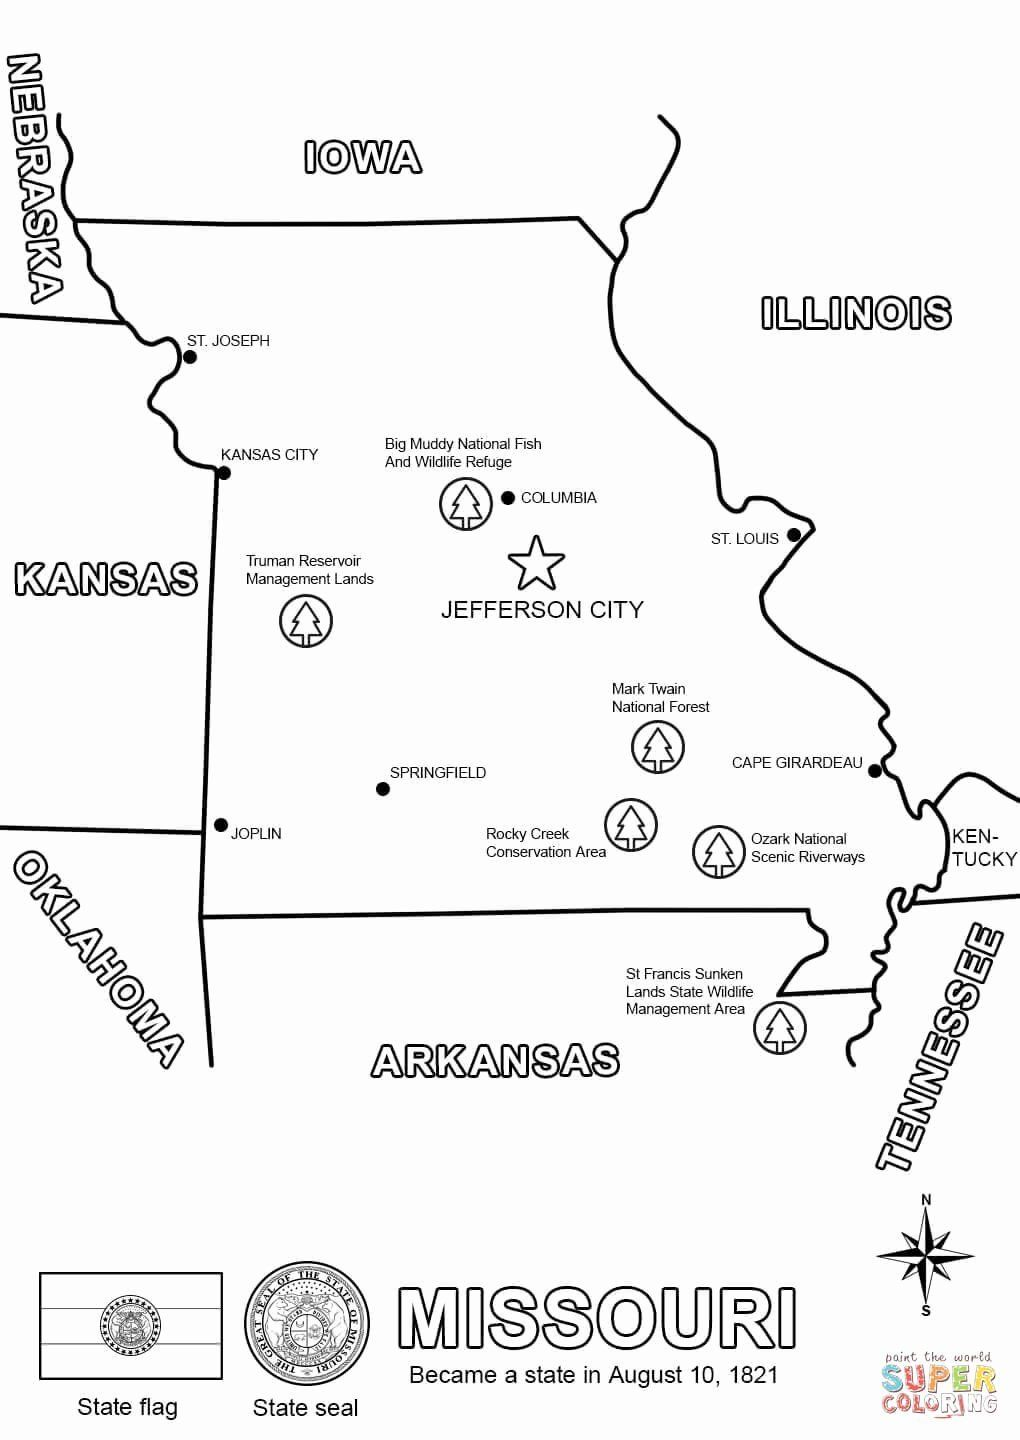 Iowa state flag coloring page fresh missouri map coloring page